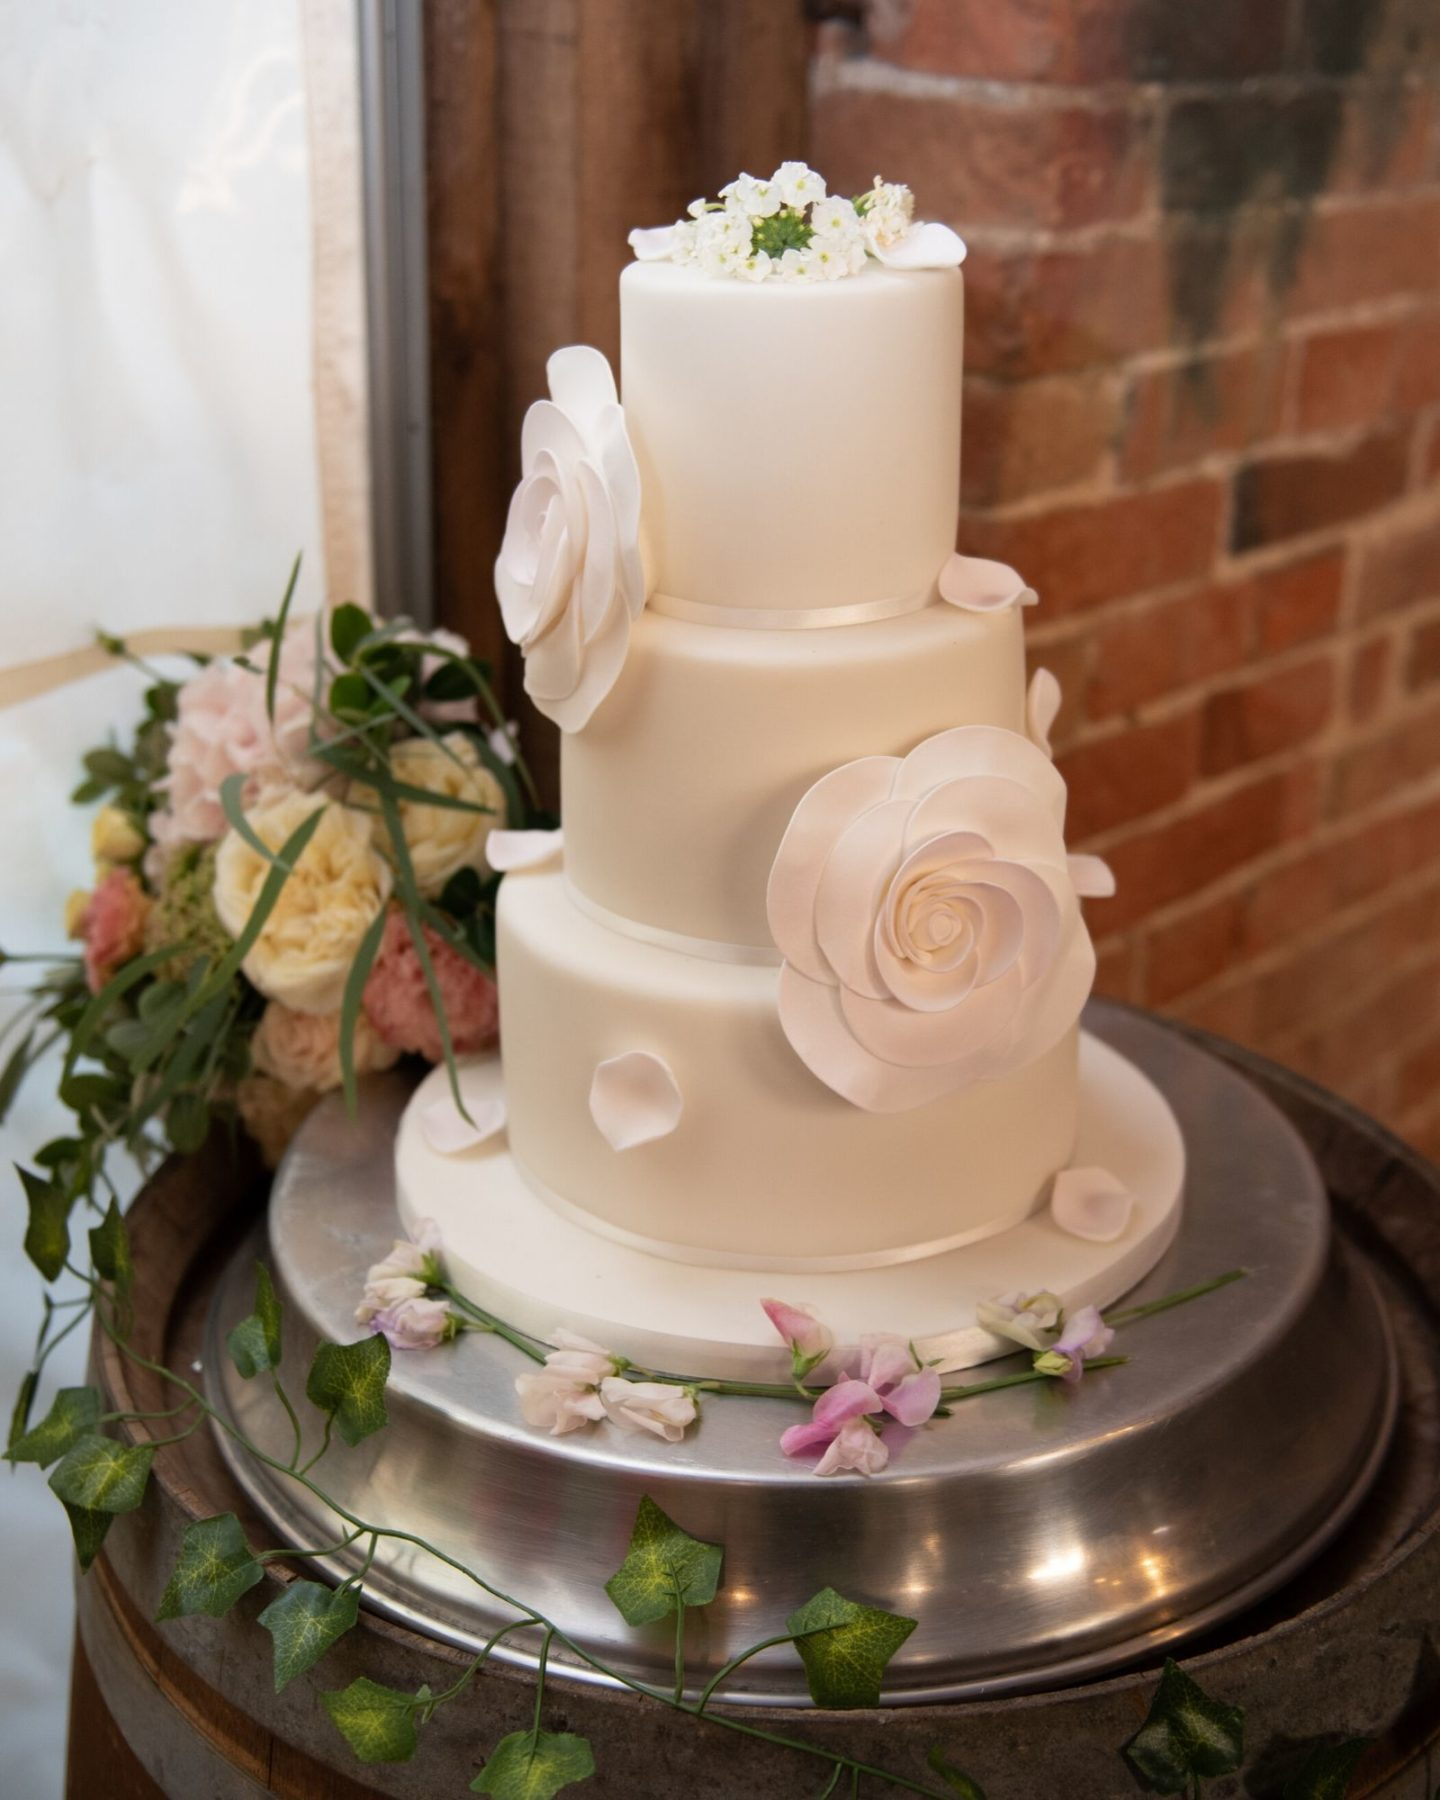 wedding cake from Marks and Spencer